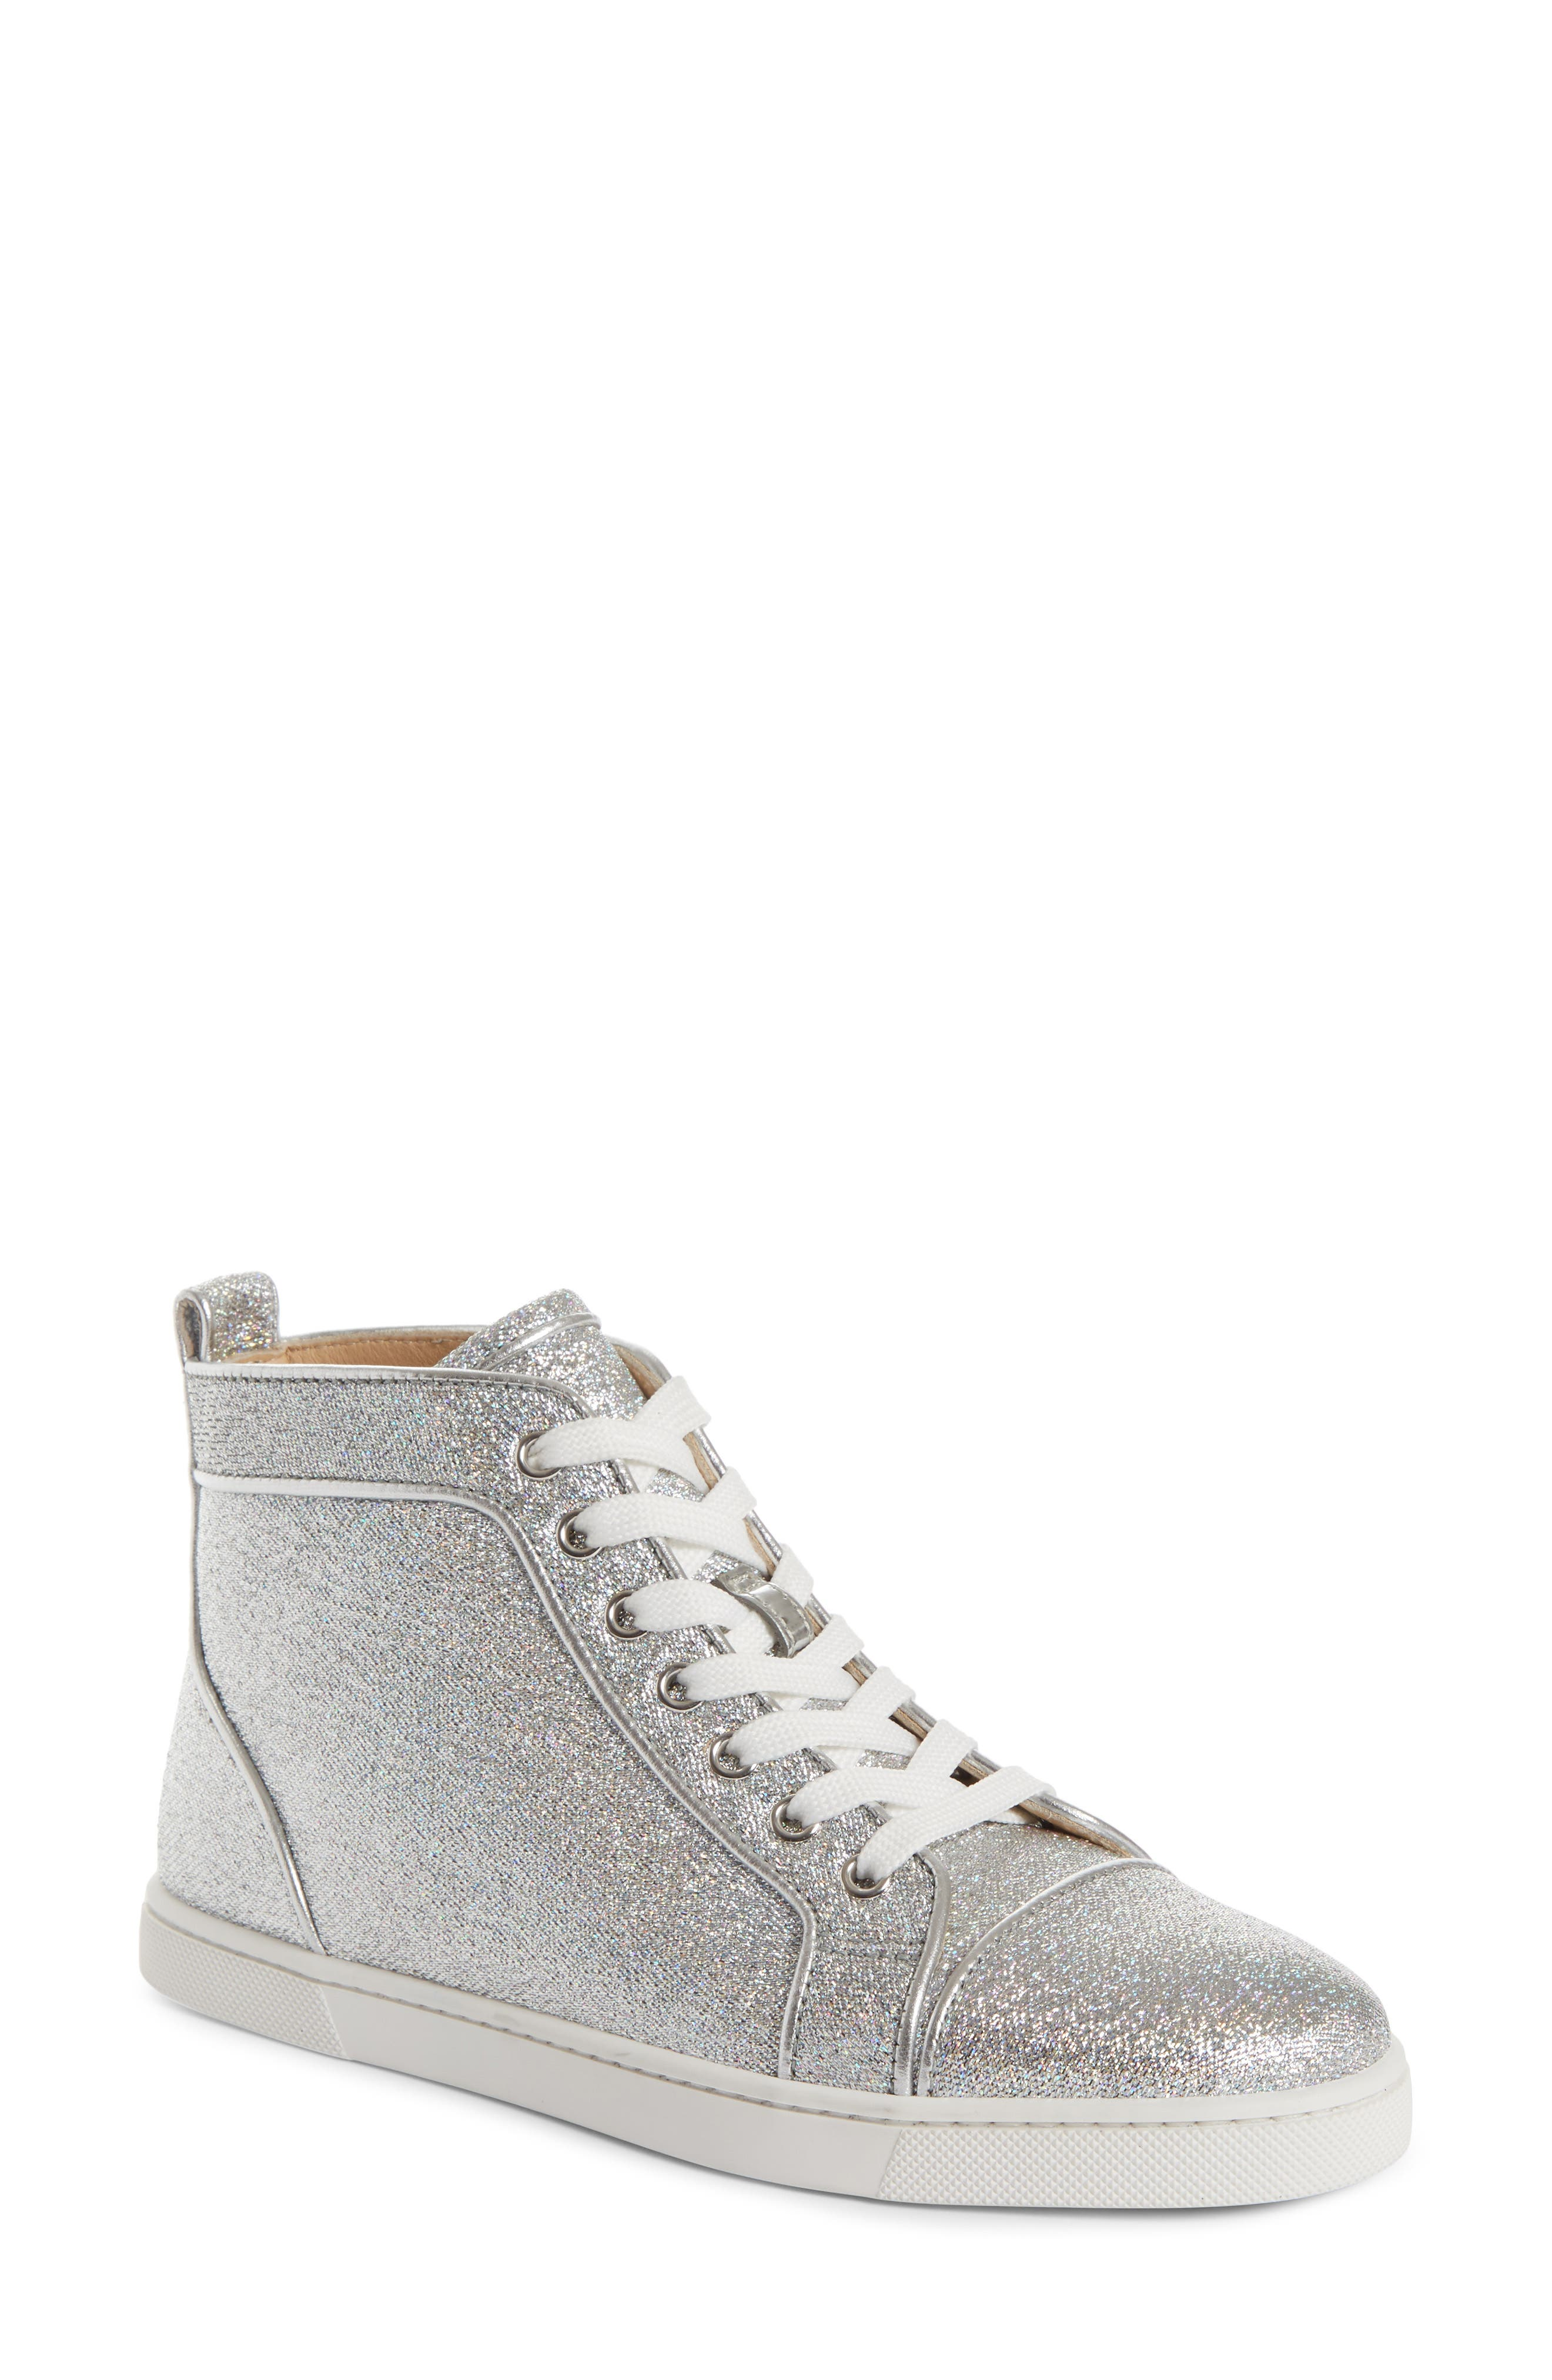 Orlato Metallic High Top Sneaker,                         Main,                         color, Silver